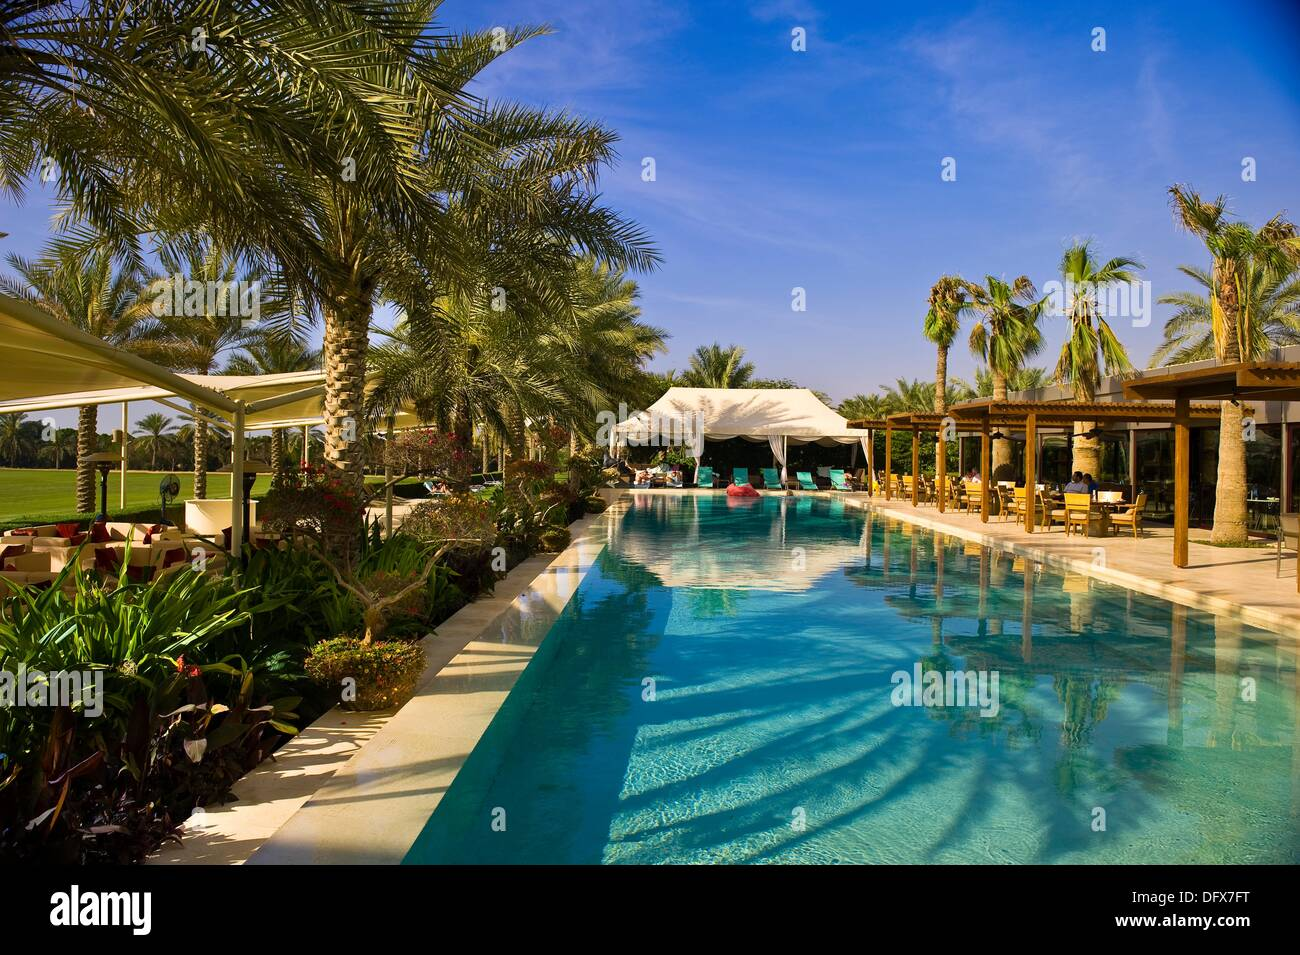 Swimming Pool Desert Palm Hotel Dubai United Arab Emirates Stock Photo Royalty Free Image